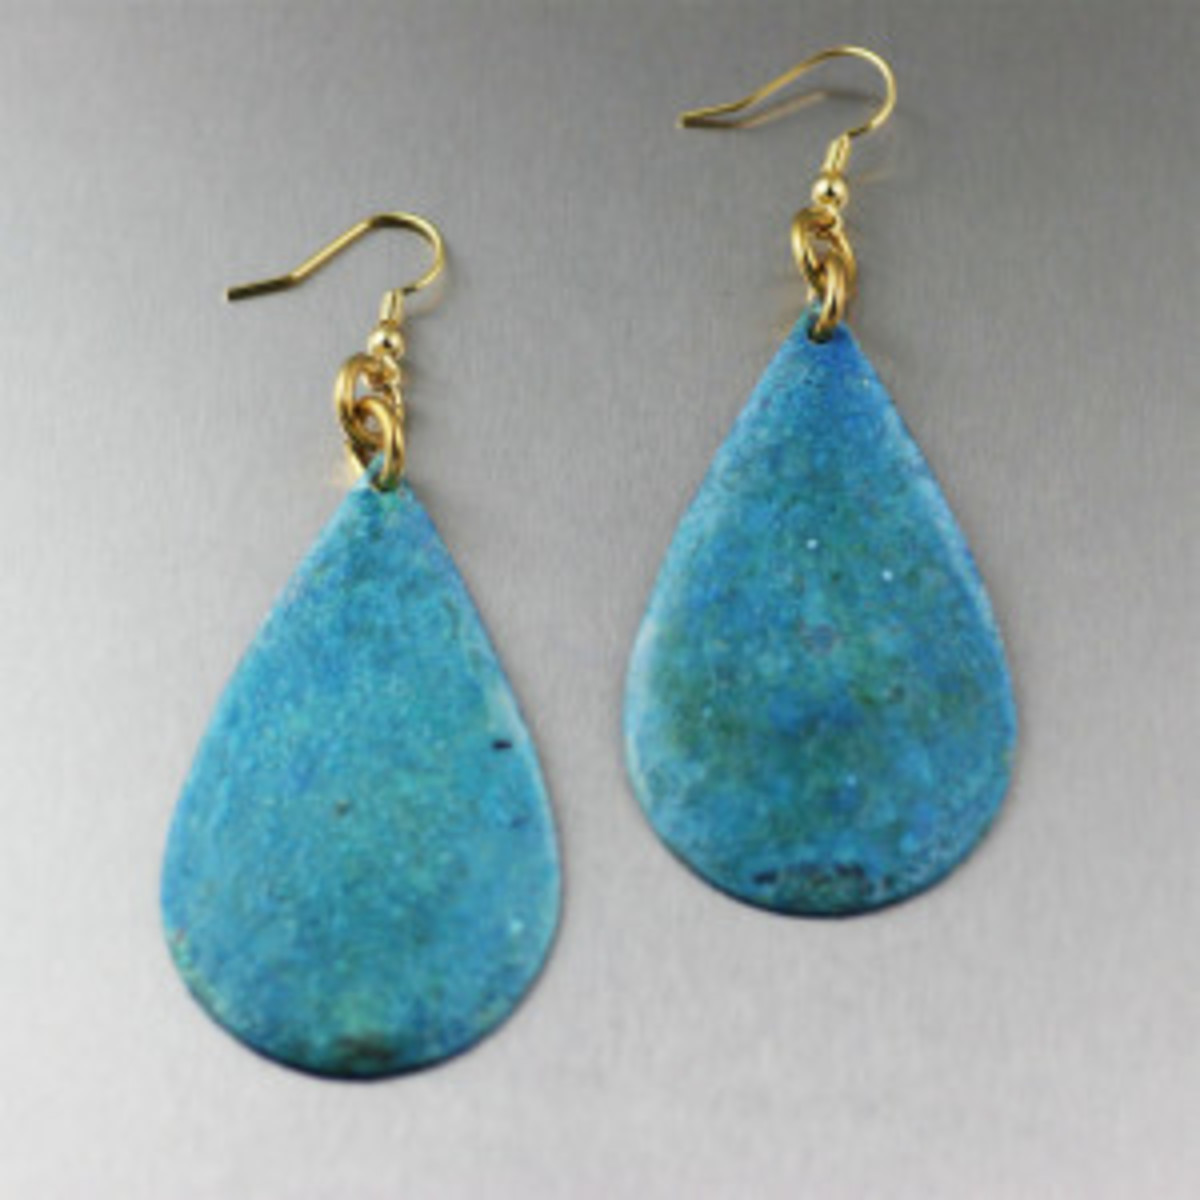 Handmade Blue Patinated Teardrop Copper Earrings